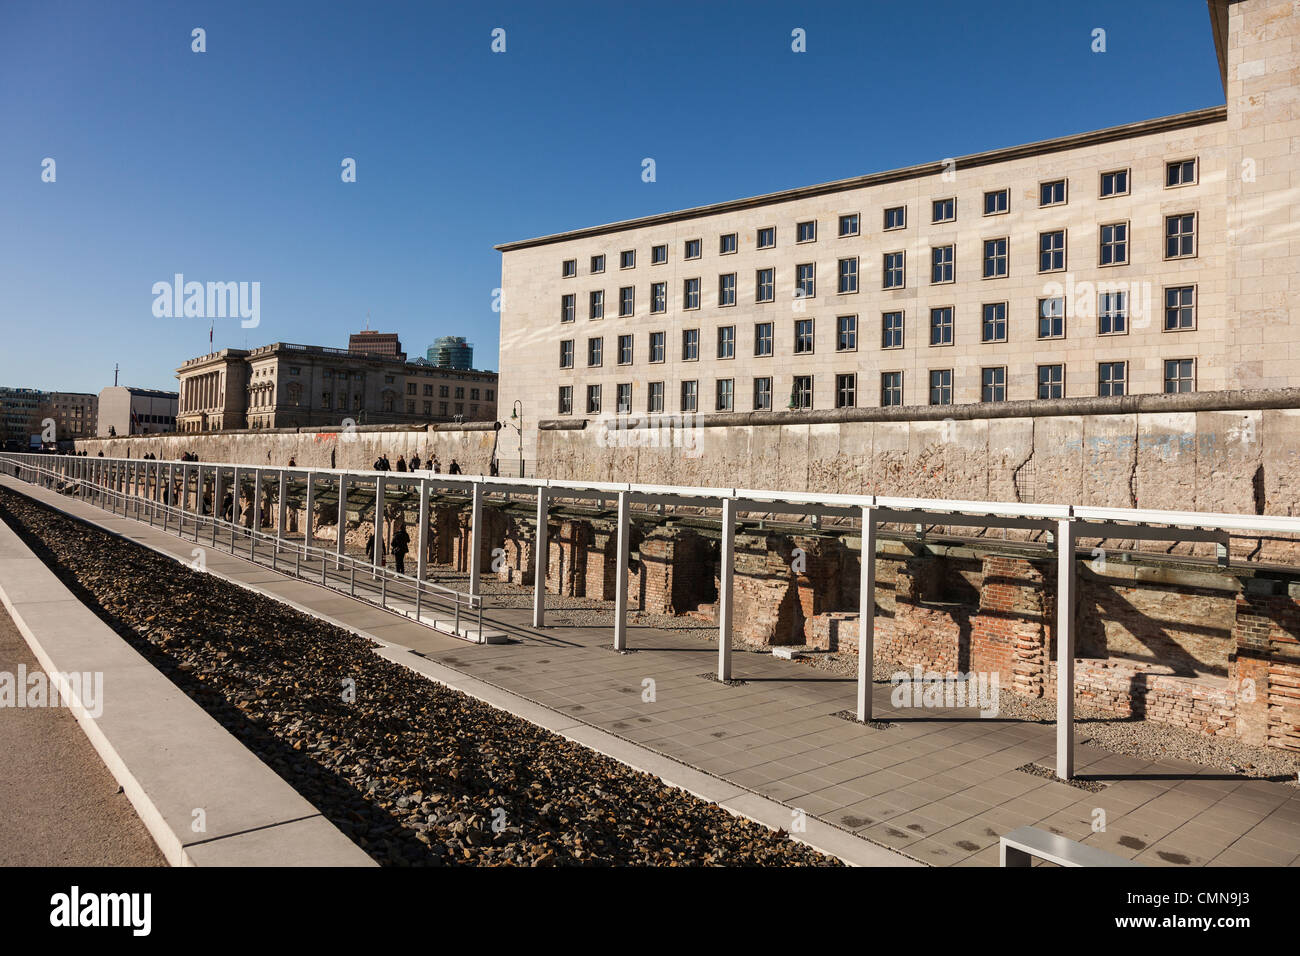 Berlin,The Topography of Terror Museum,Germany - Stock Image